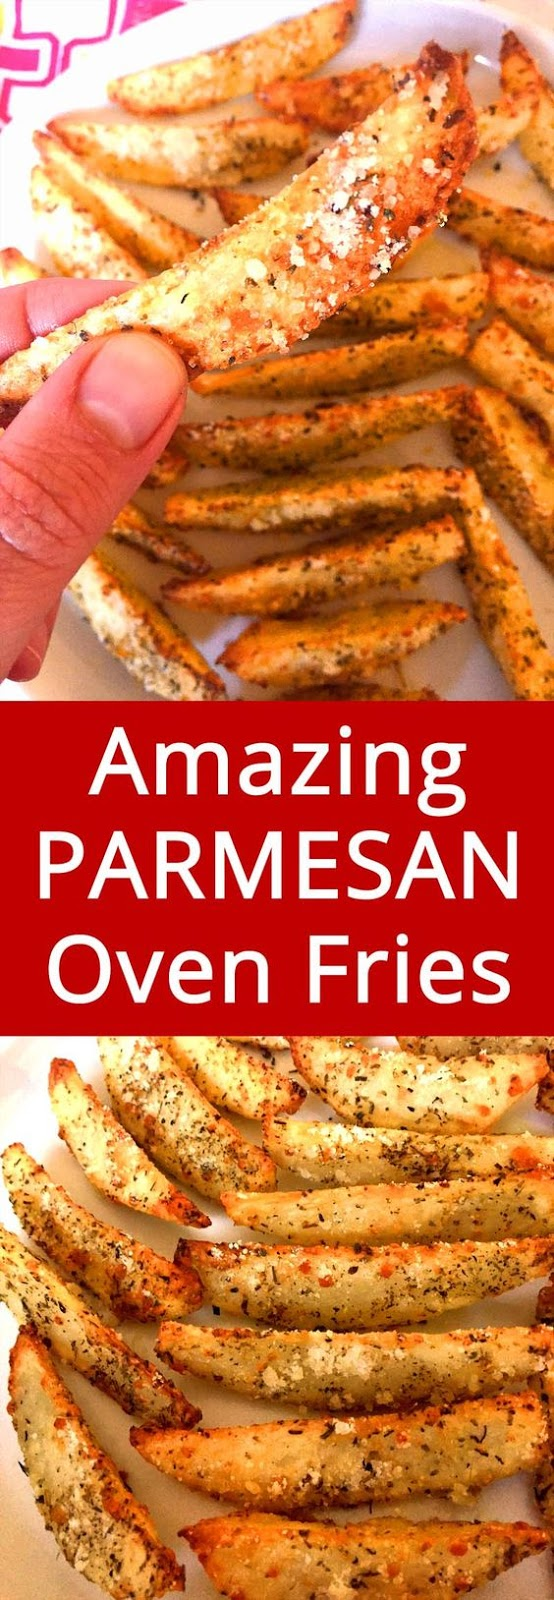 Healthy fries is not an oxymoron! These BAKED garlic Parmesan potato fries are so delicious, this recipe almost seems too good to be true! You don't have to FRY the fries to make them crispy and yummy.  In fact, I don't even own a deep fryer – the oven can do an amazing job browning and crisping the fries if you use the right technique!